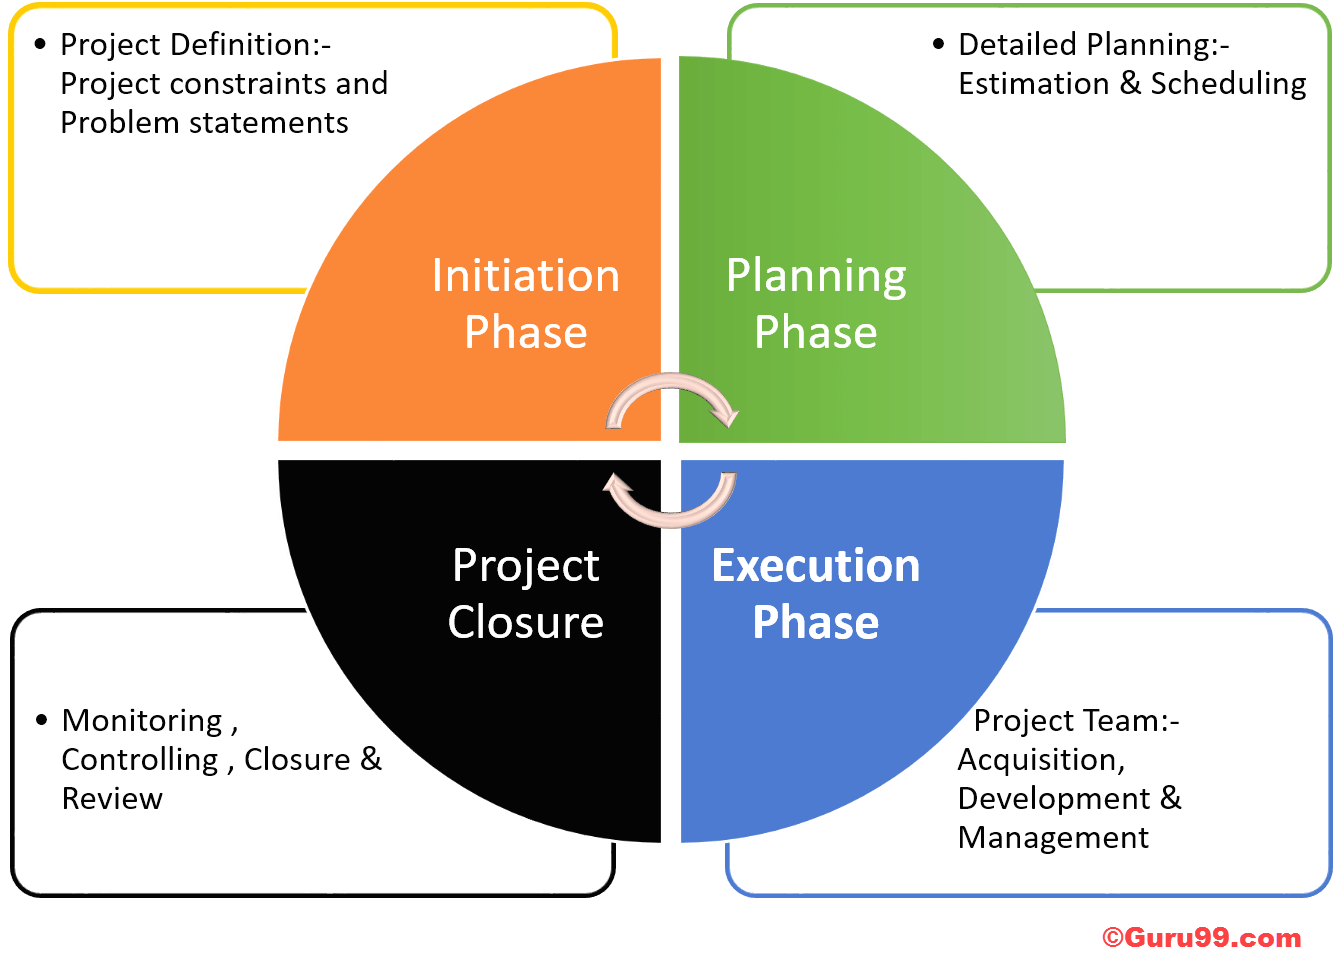 Project Management Scope: Project Management Life Cycle: Complete Guide